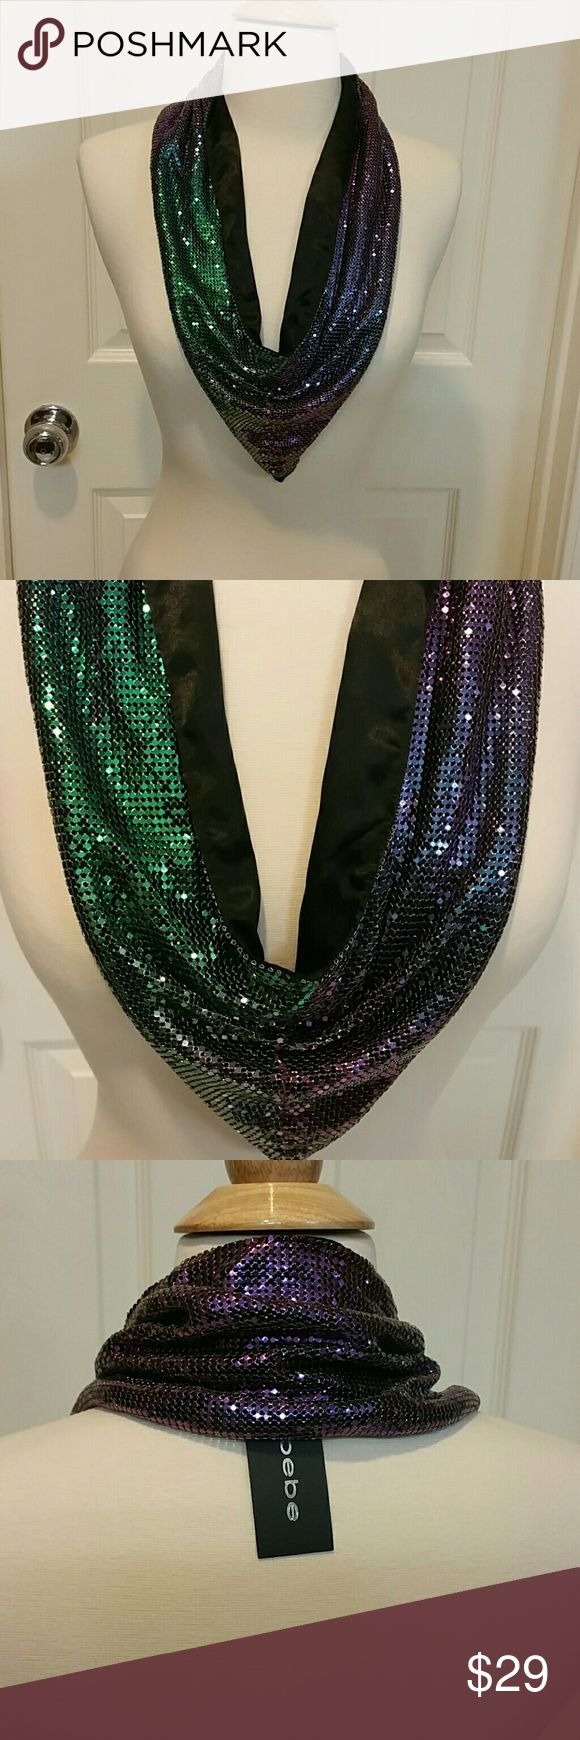 Bebe Metallic Scarf Dress up a plain outfit with this metallic scarf with glittering emerald and purple color. 100% aluminum. Price firm. bebe Accessories Scarves & Wraps